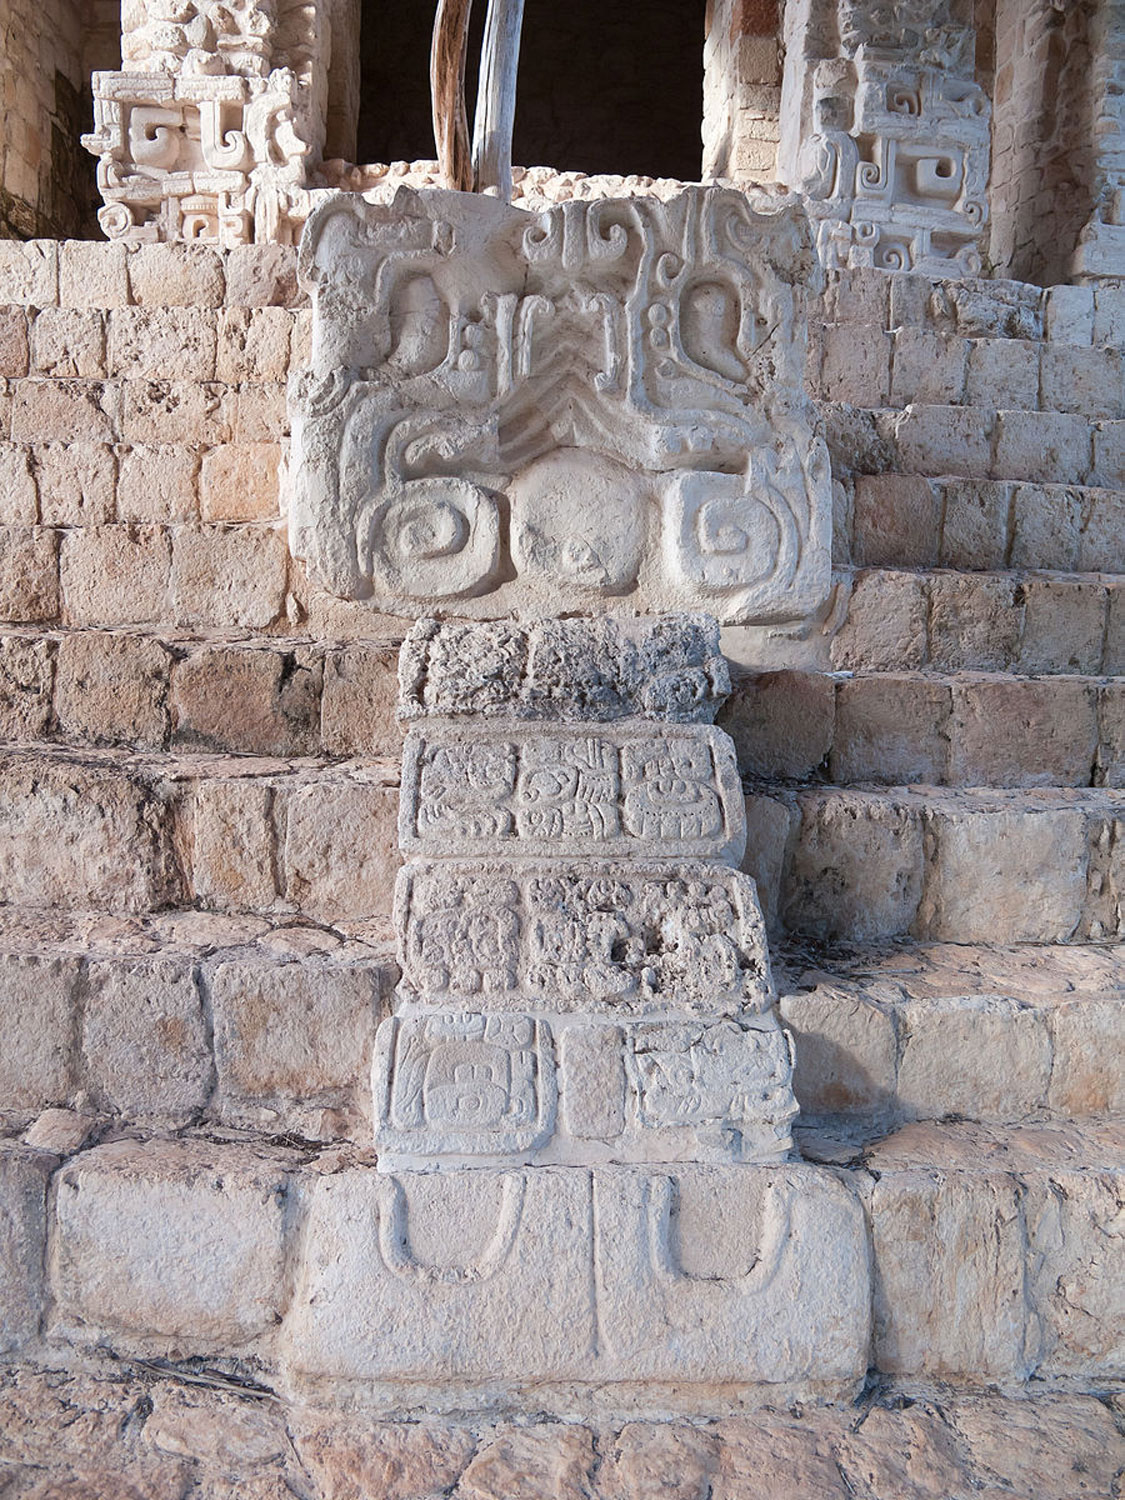 Head of serpent at the Acropolis staircase in Ek' Balam. Hieroglyphs on the snake's tongue indicate that the staircase was dedicated as a war memorial.